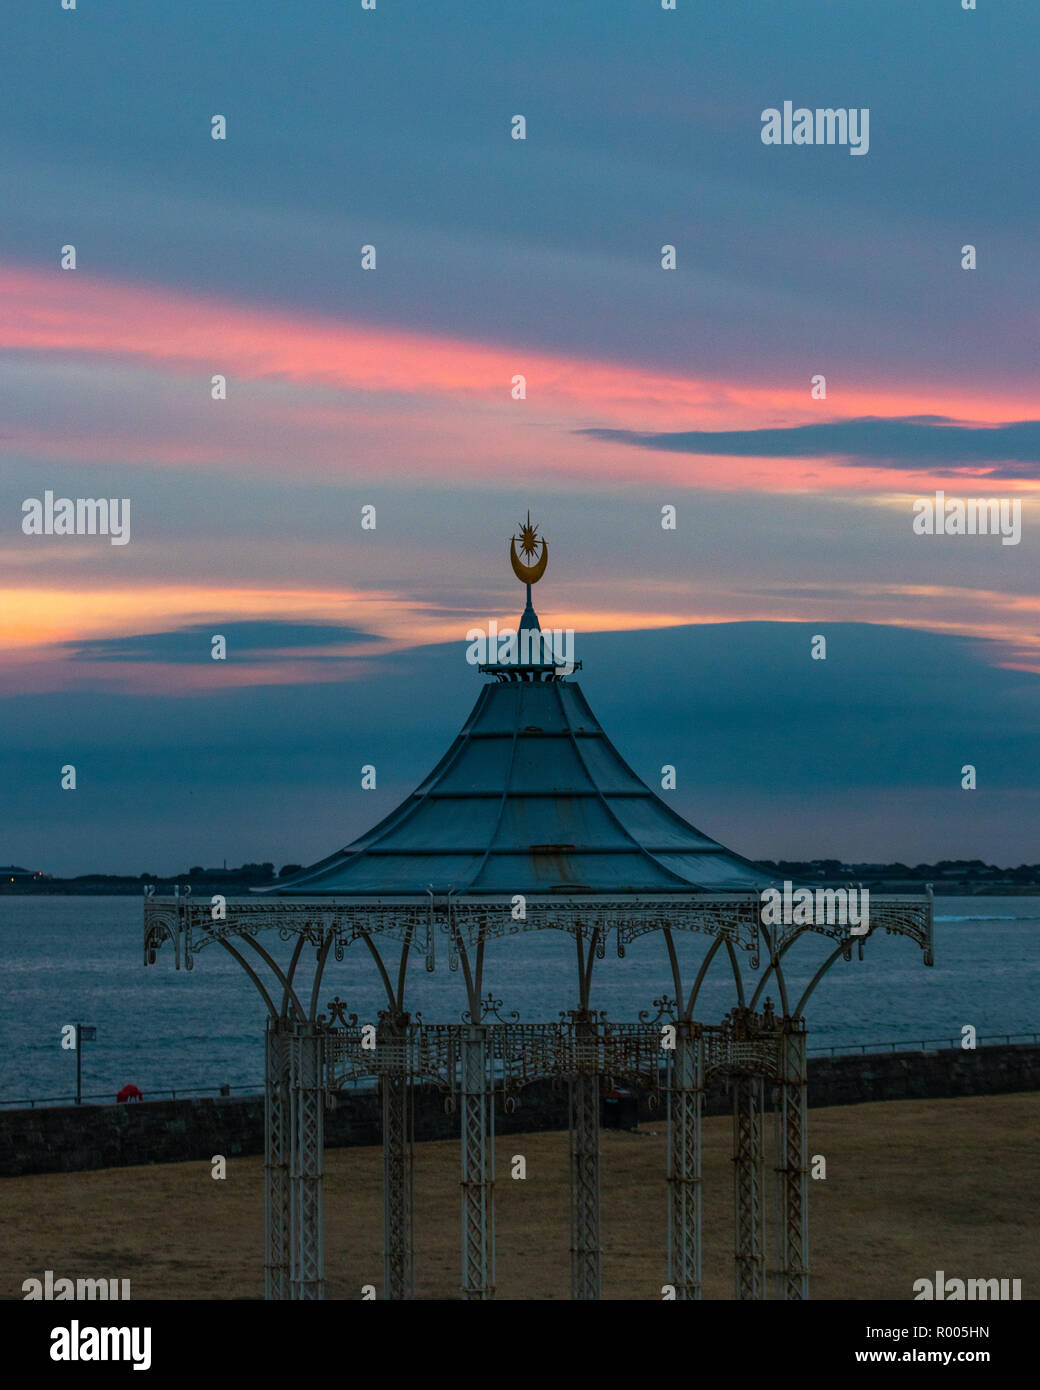 Southsea victorian bandstand at sunset, Southsea, Portsmouth - Stock Image